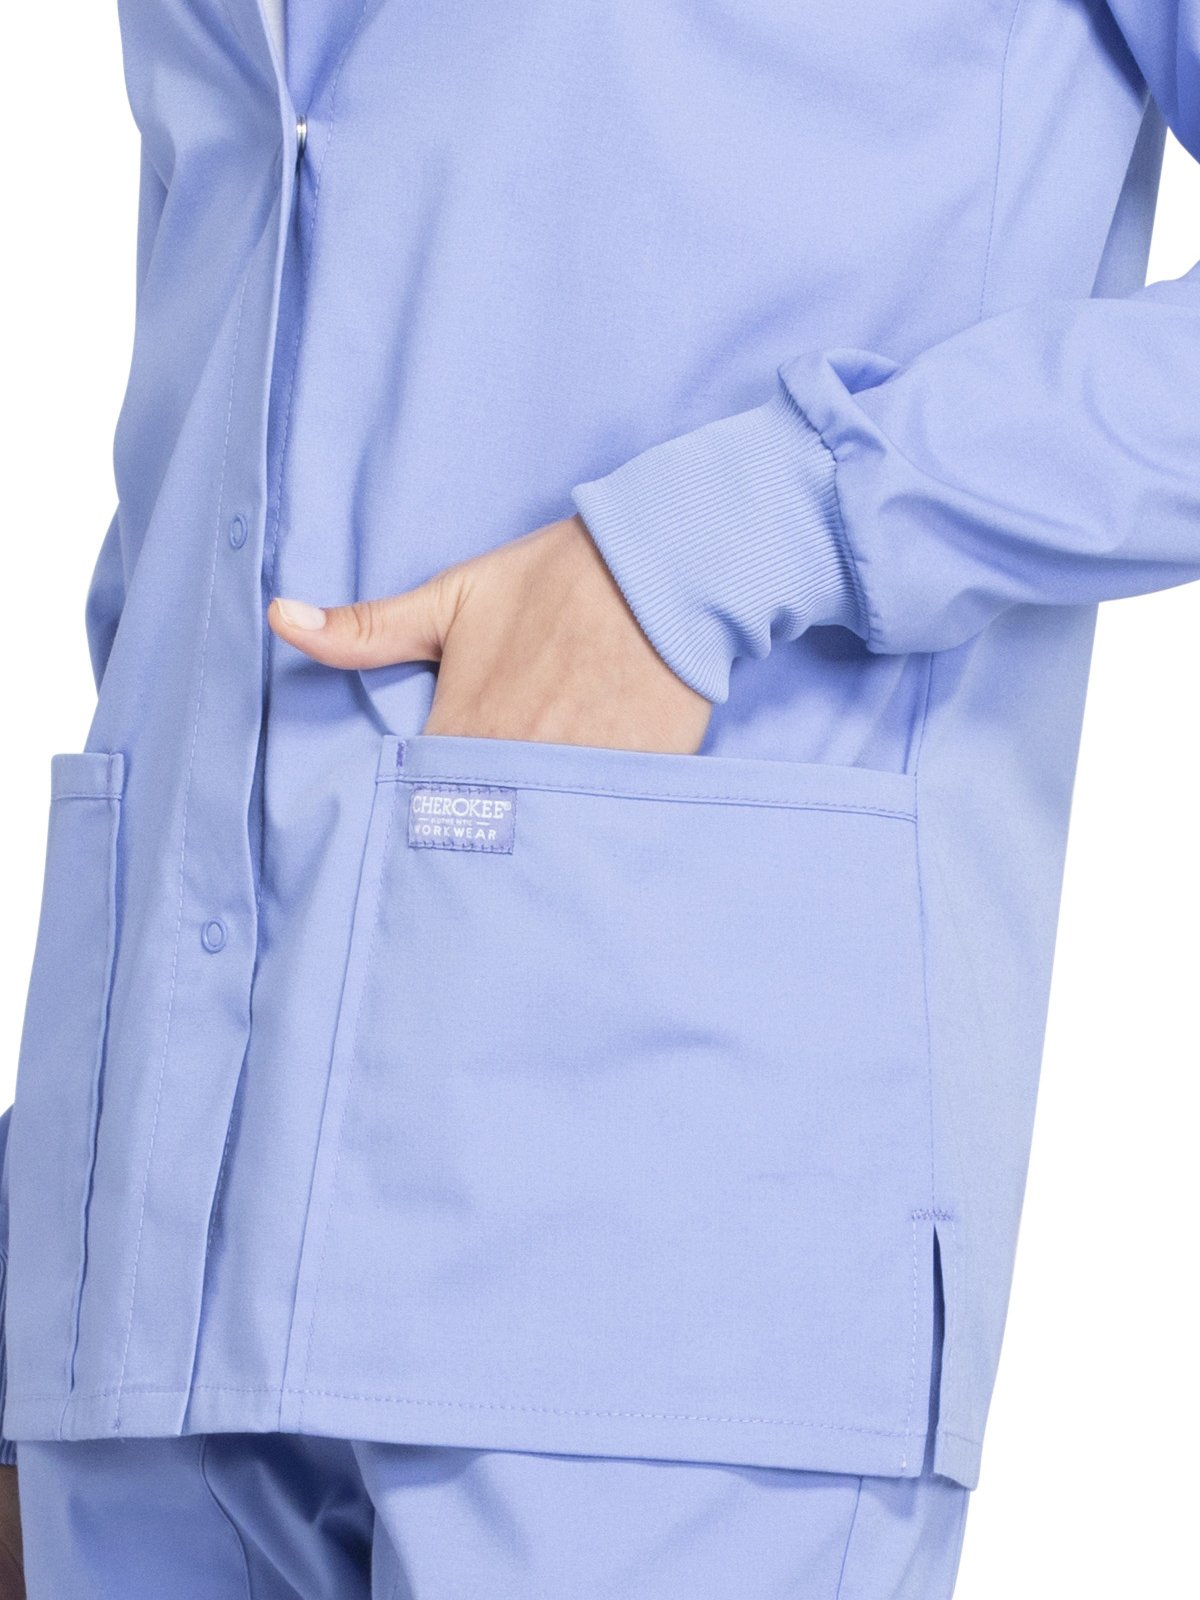 Cherokee Professionals Workwear Women's Snap Front Warm-Up Solid Scrub Jacket Medium Ciel Blue by Cherokee (Image #3)